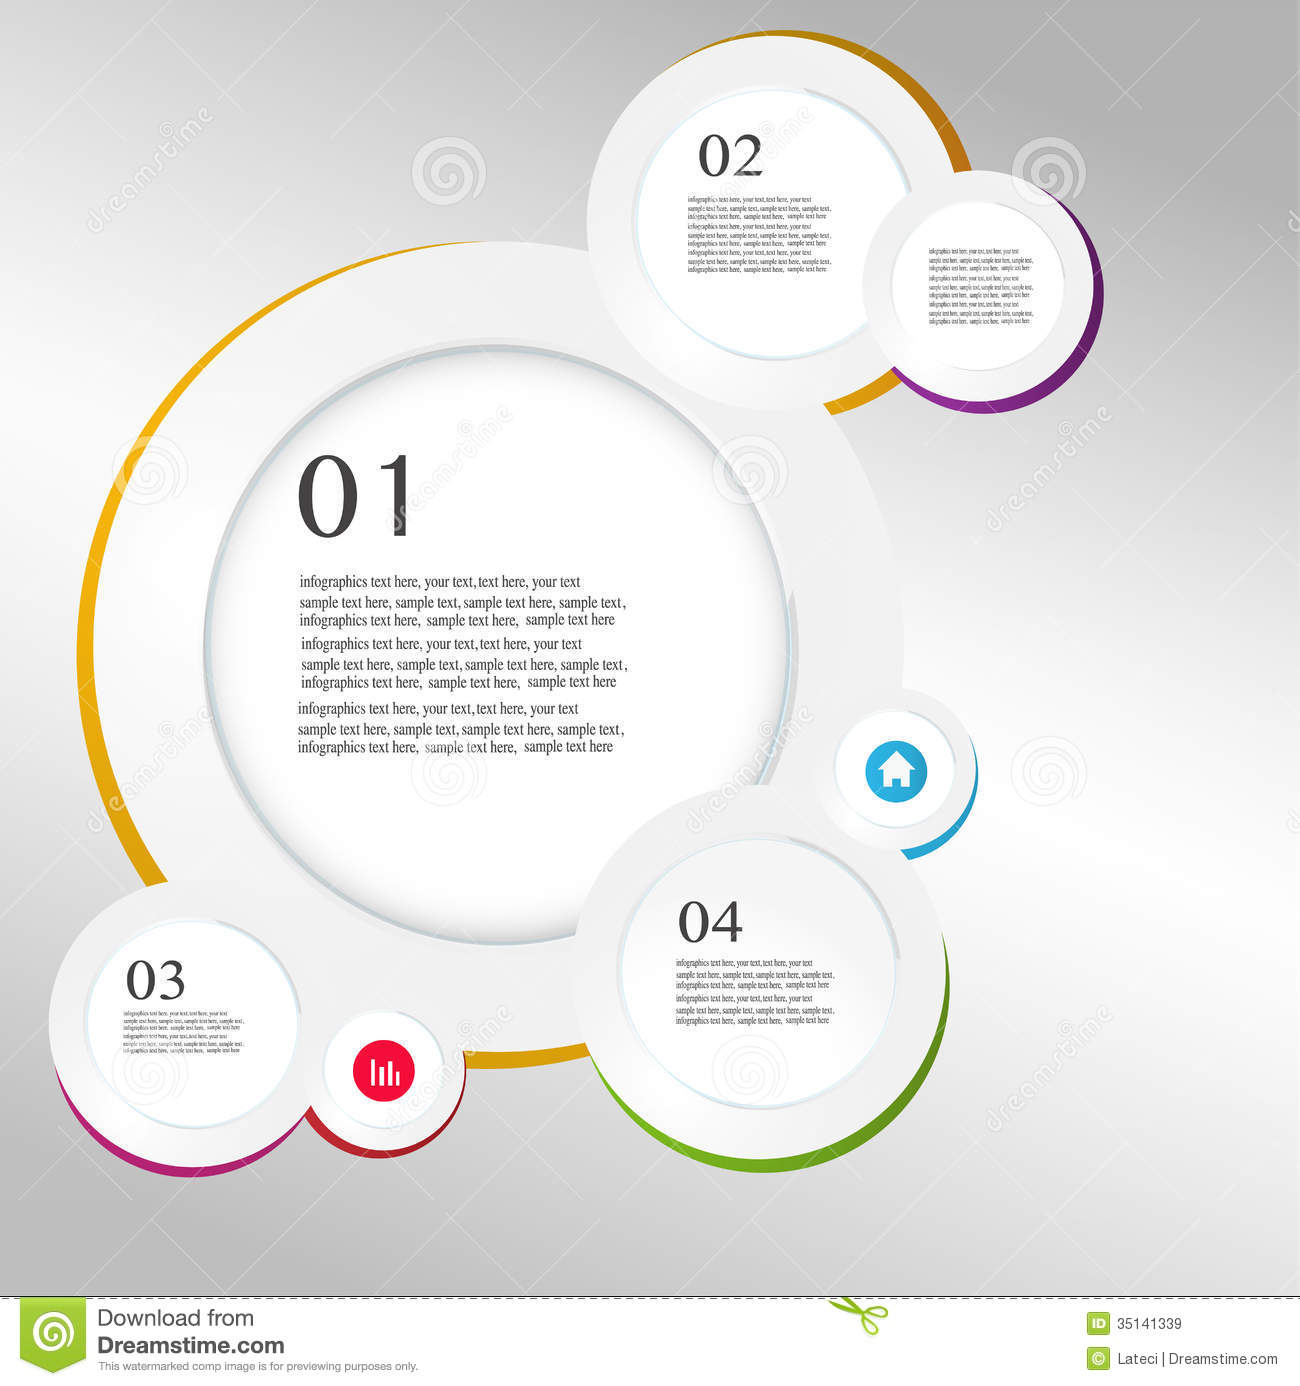 money origami diagram outer ear labeled business infographics circle style vector royalty free stock images - image: 35141339